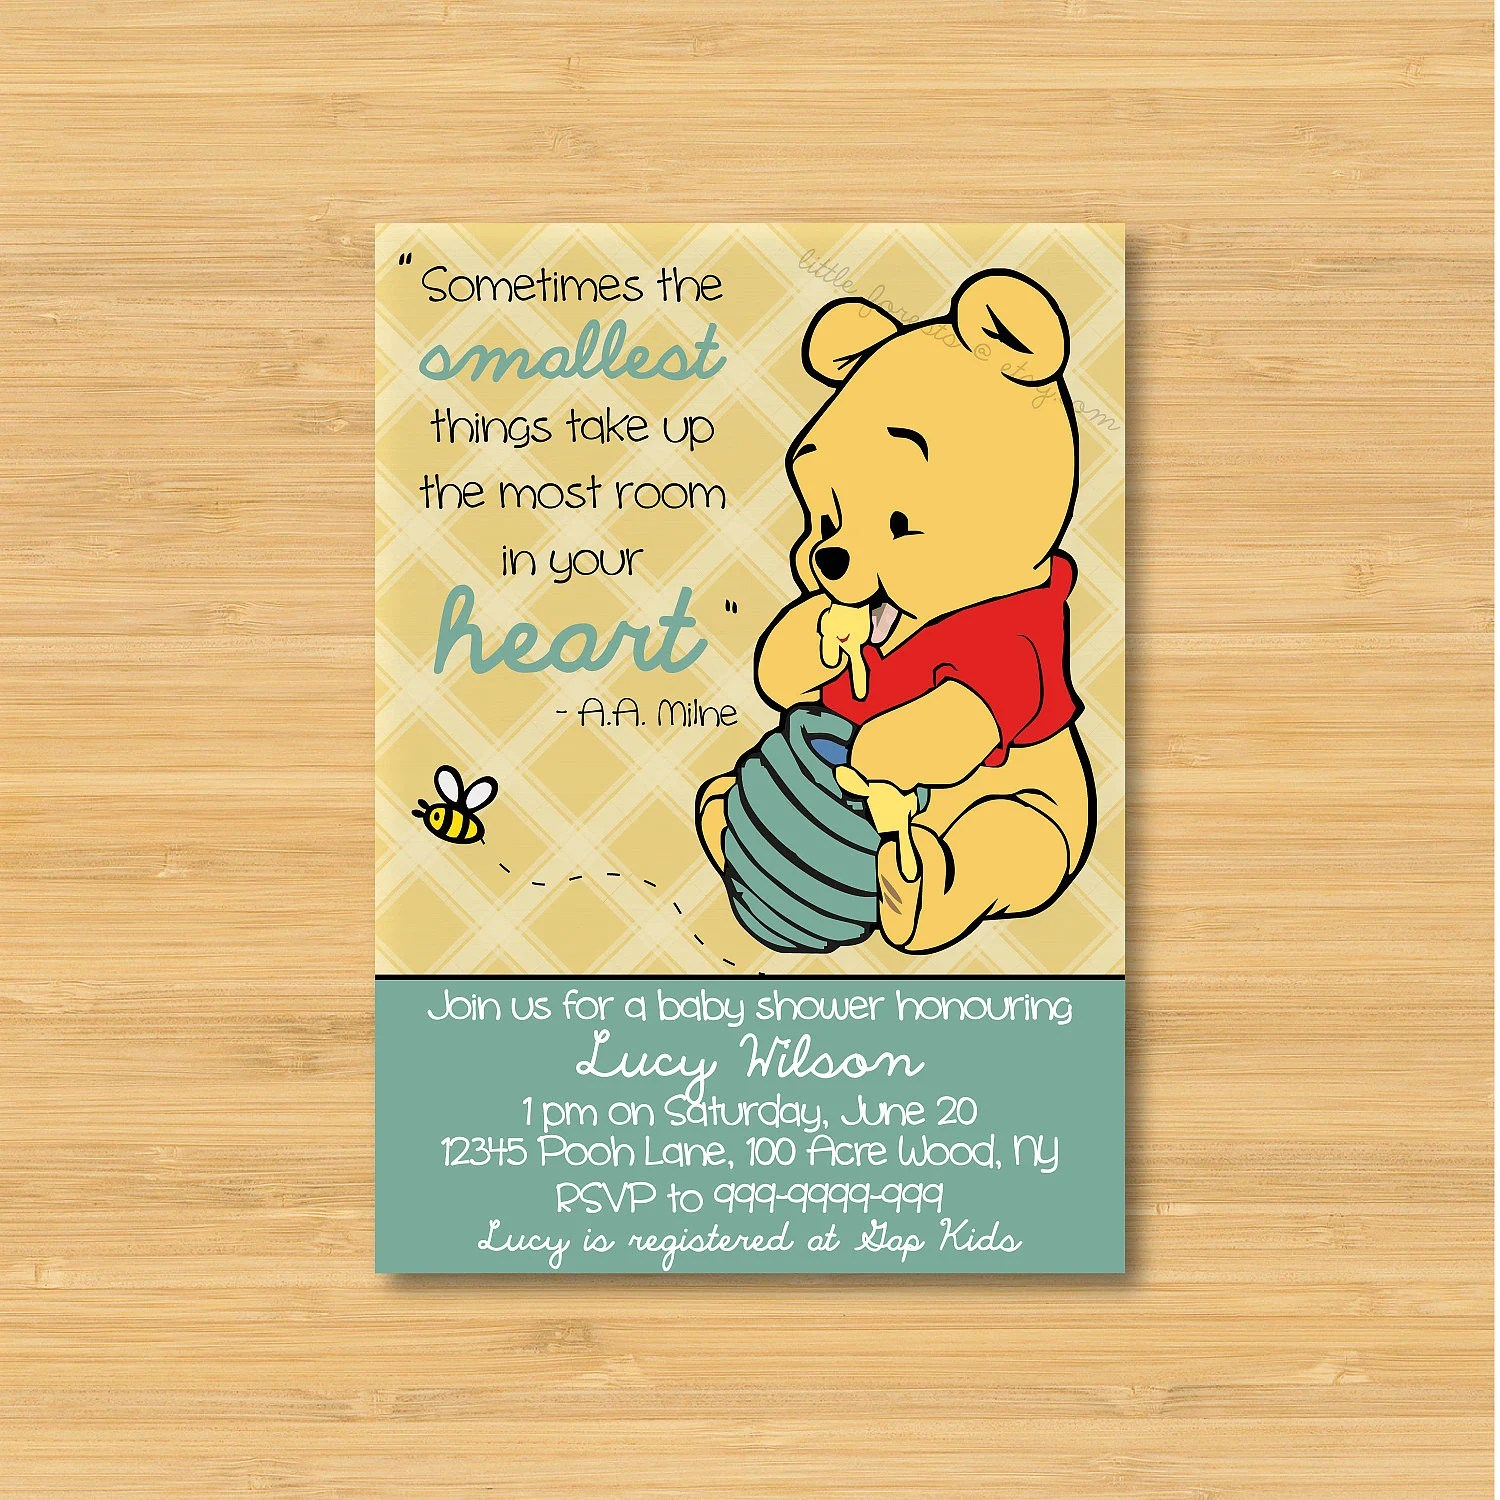 Pooh Bear Quotes About Love